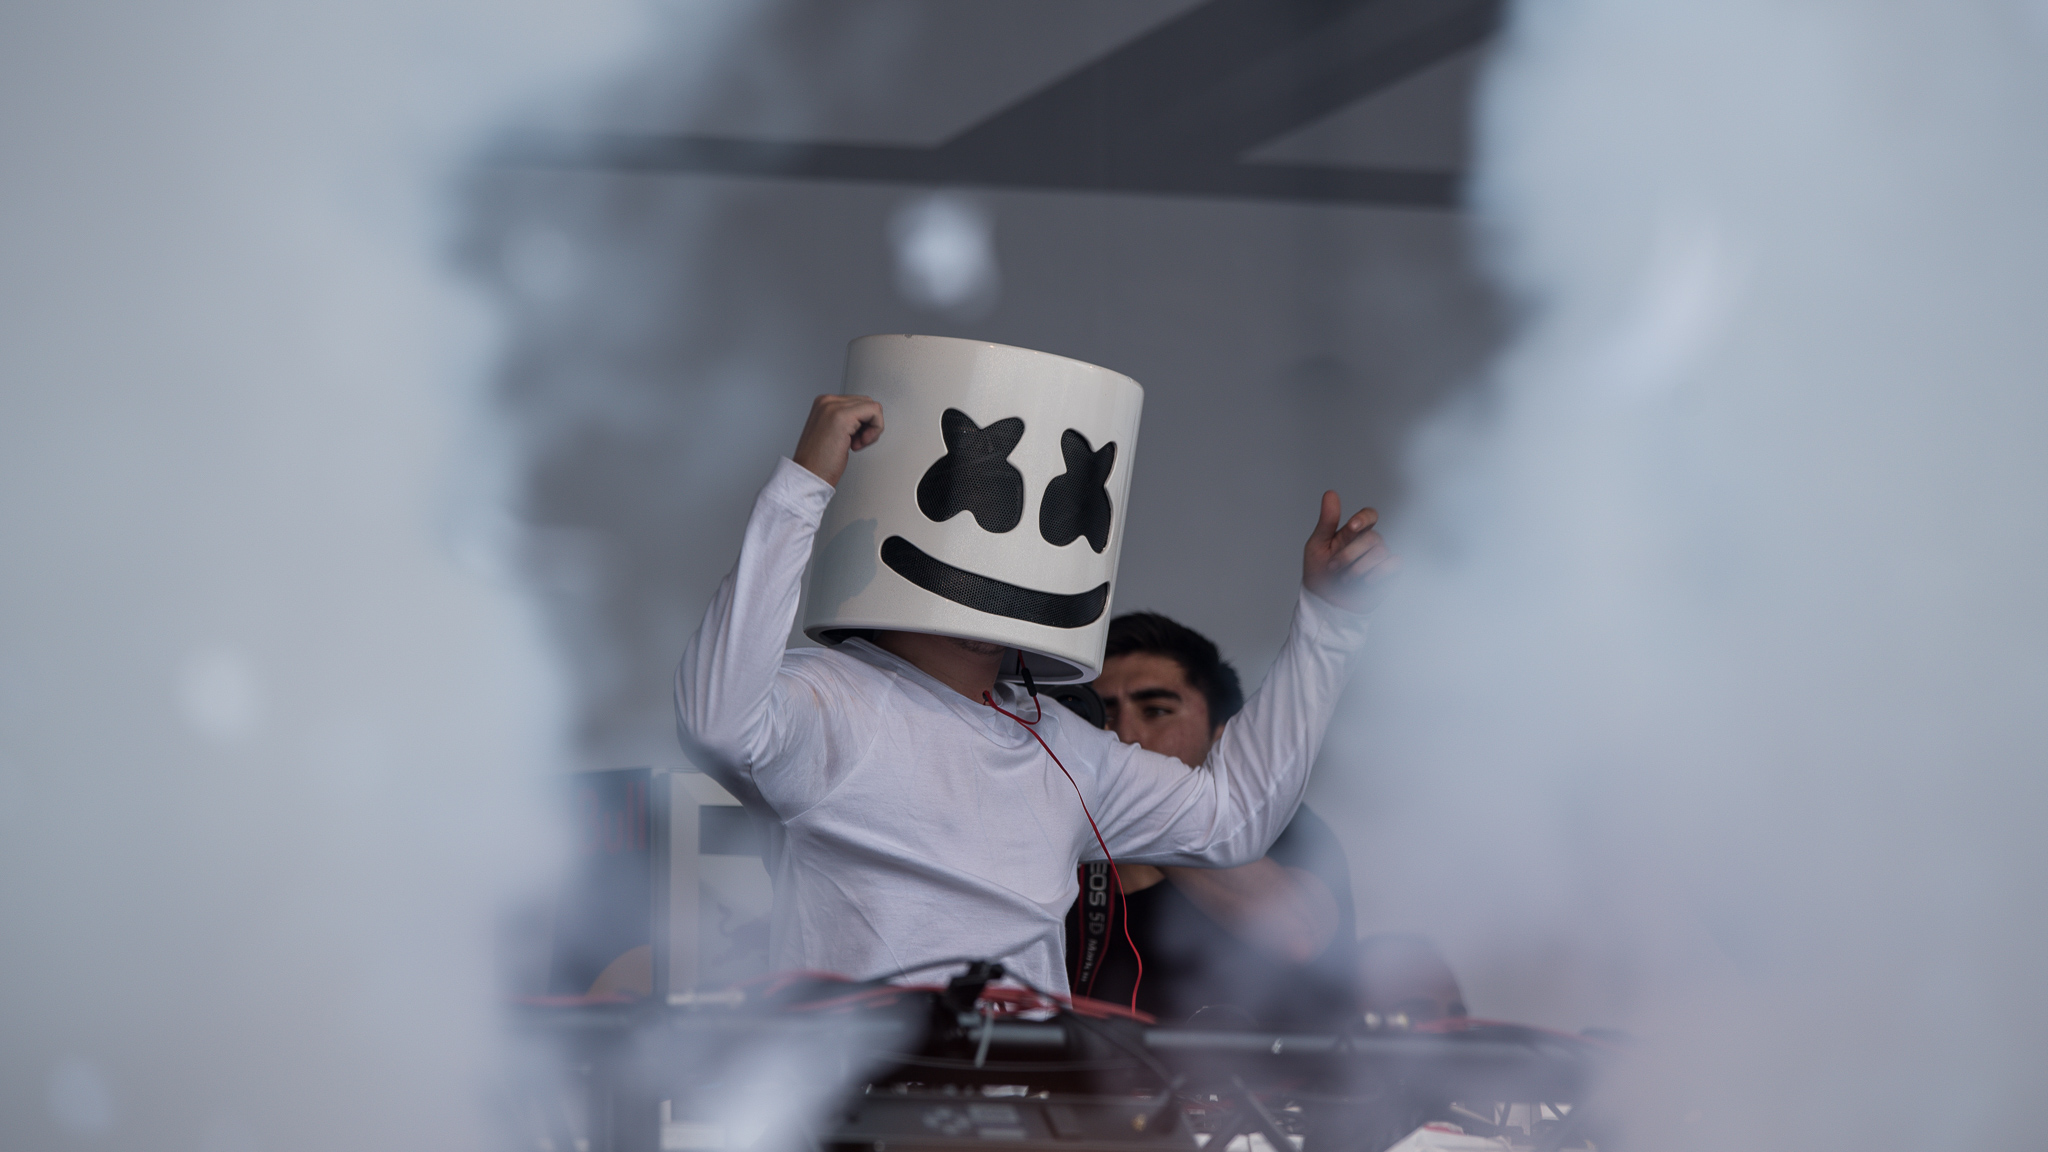 File:2016 Open Beatz - Marshmello - by 2eight -DSC 4439.jpg